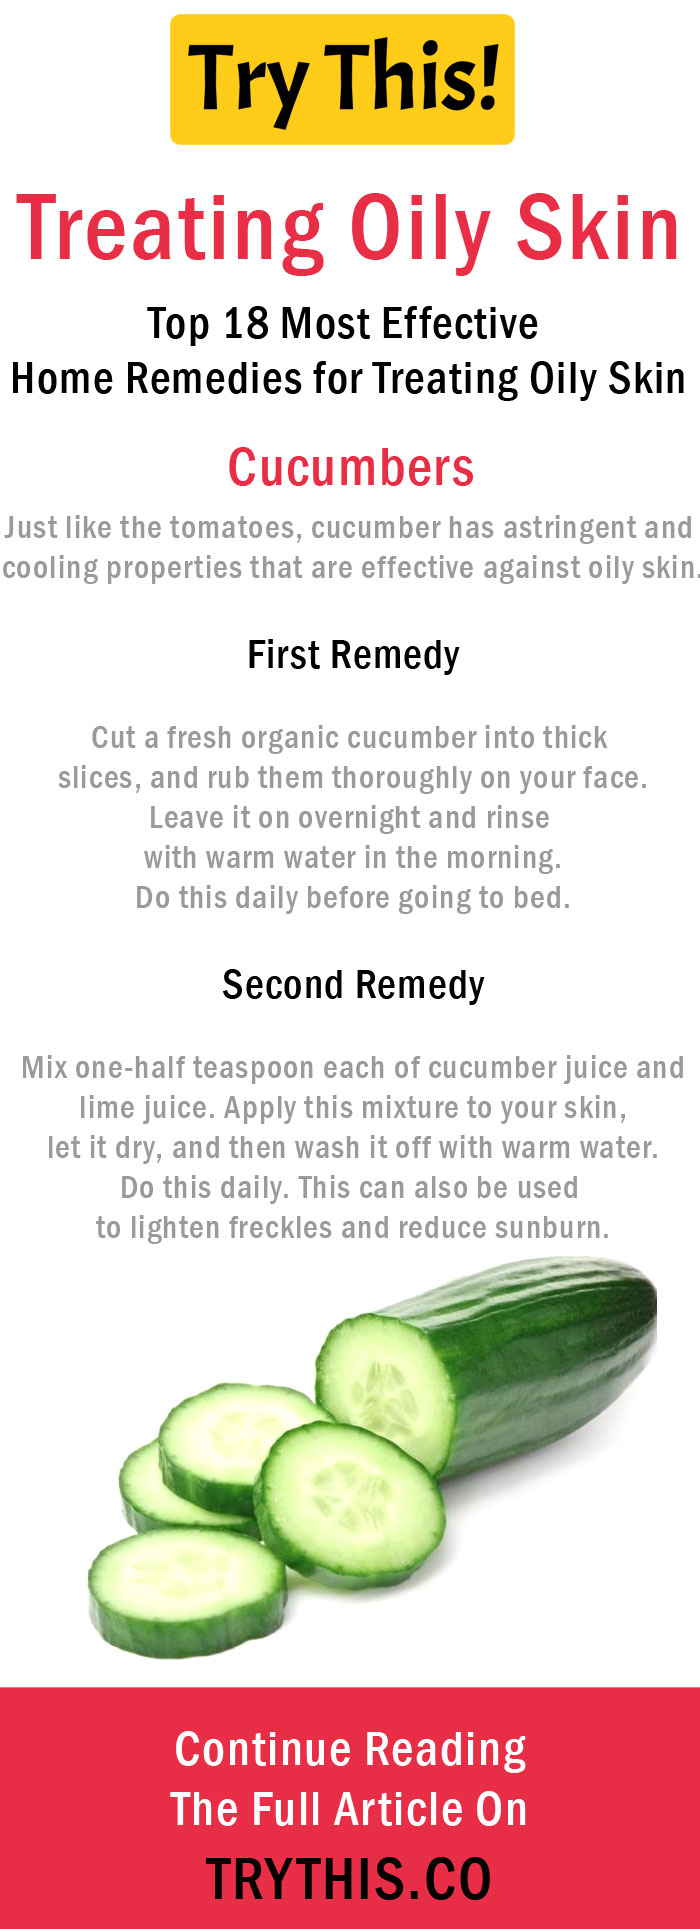 Home Remedies for Treating Oily Skin - Cucumbers